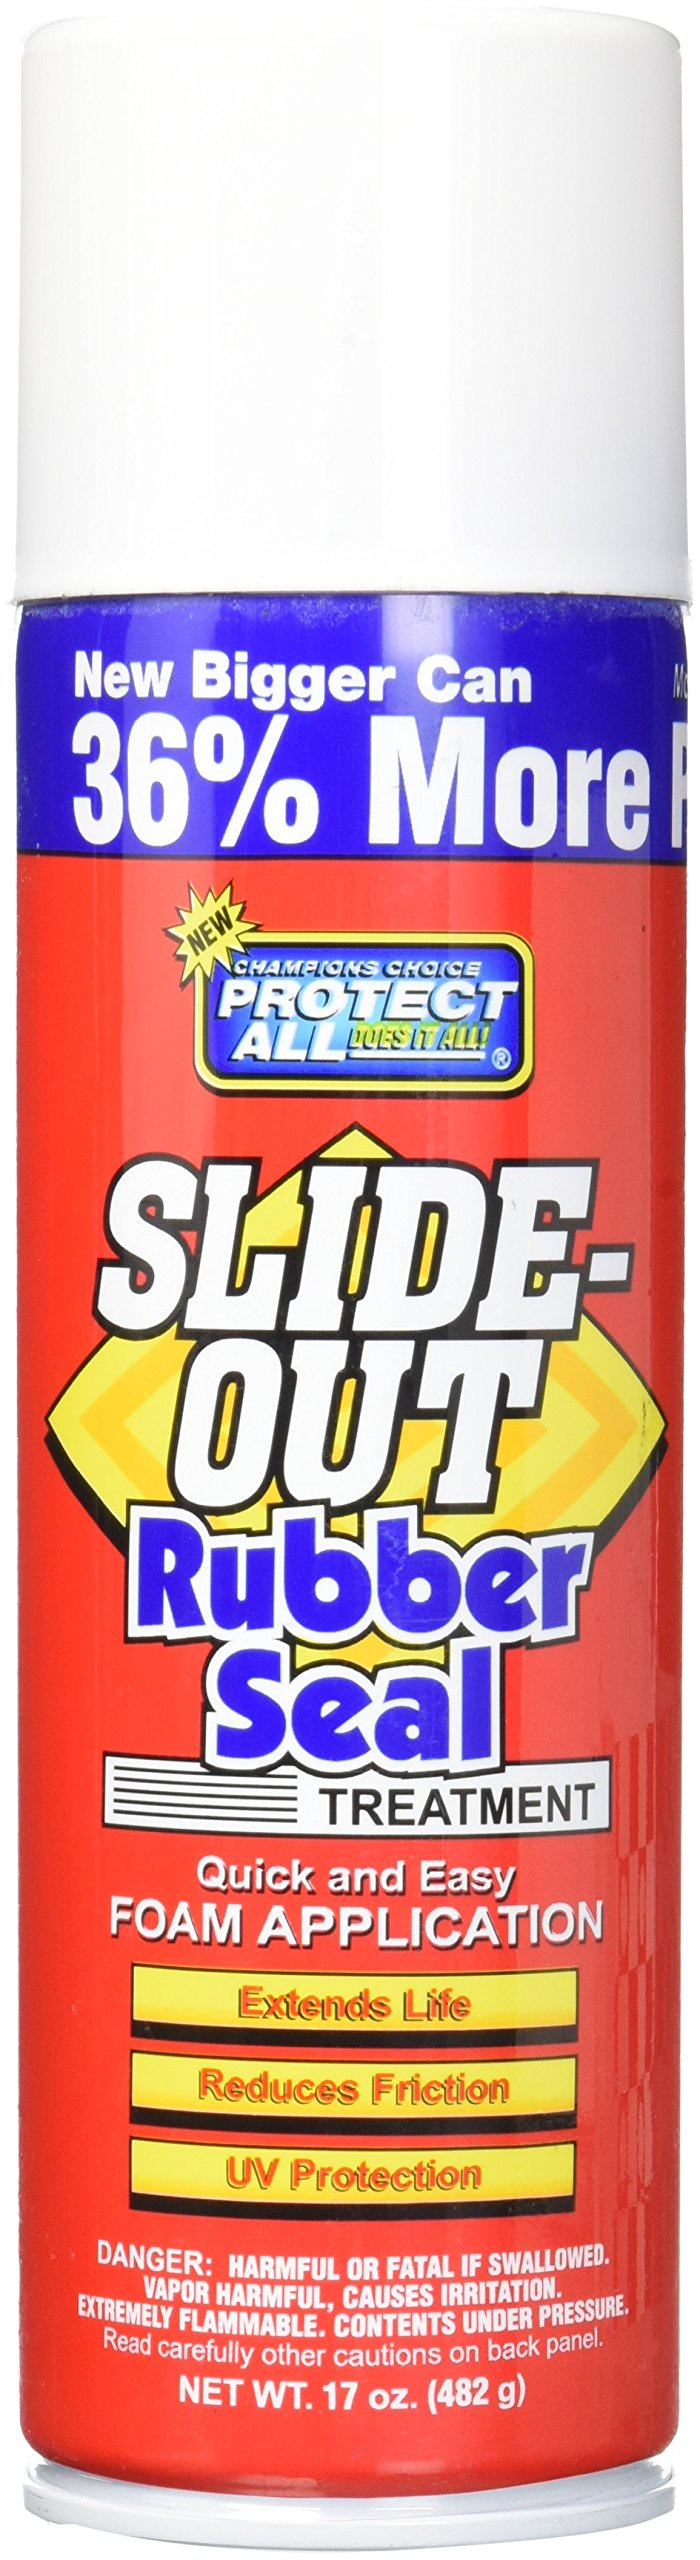 Protect All 40015 Slide-Out Rubber Seal Treatment for RVs, cars, motorcycles - 17 oz. by Protect All